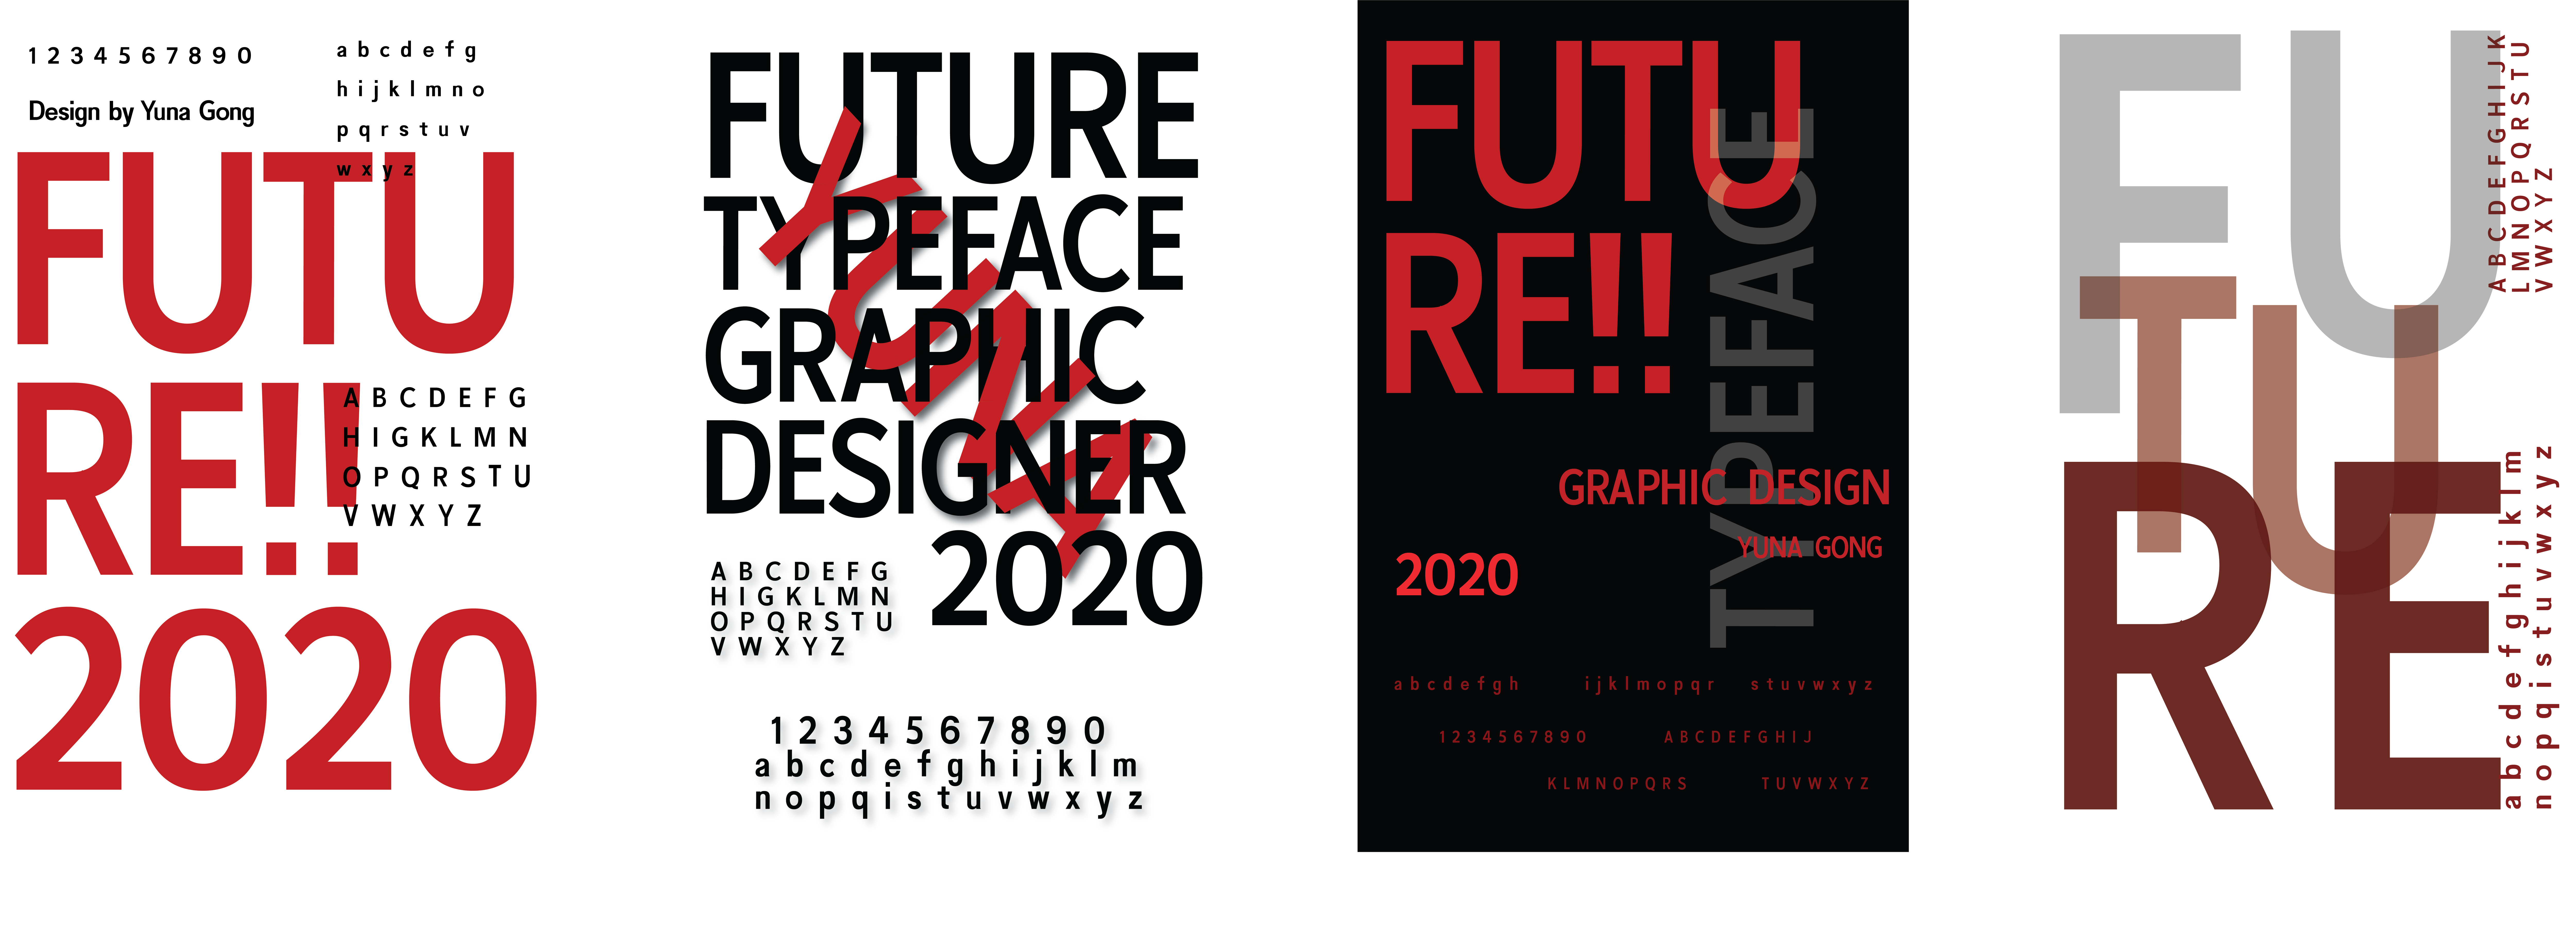 typeface-poster-1